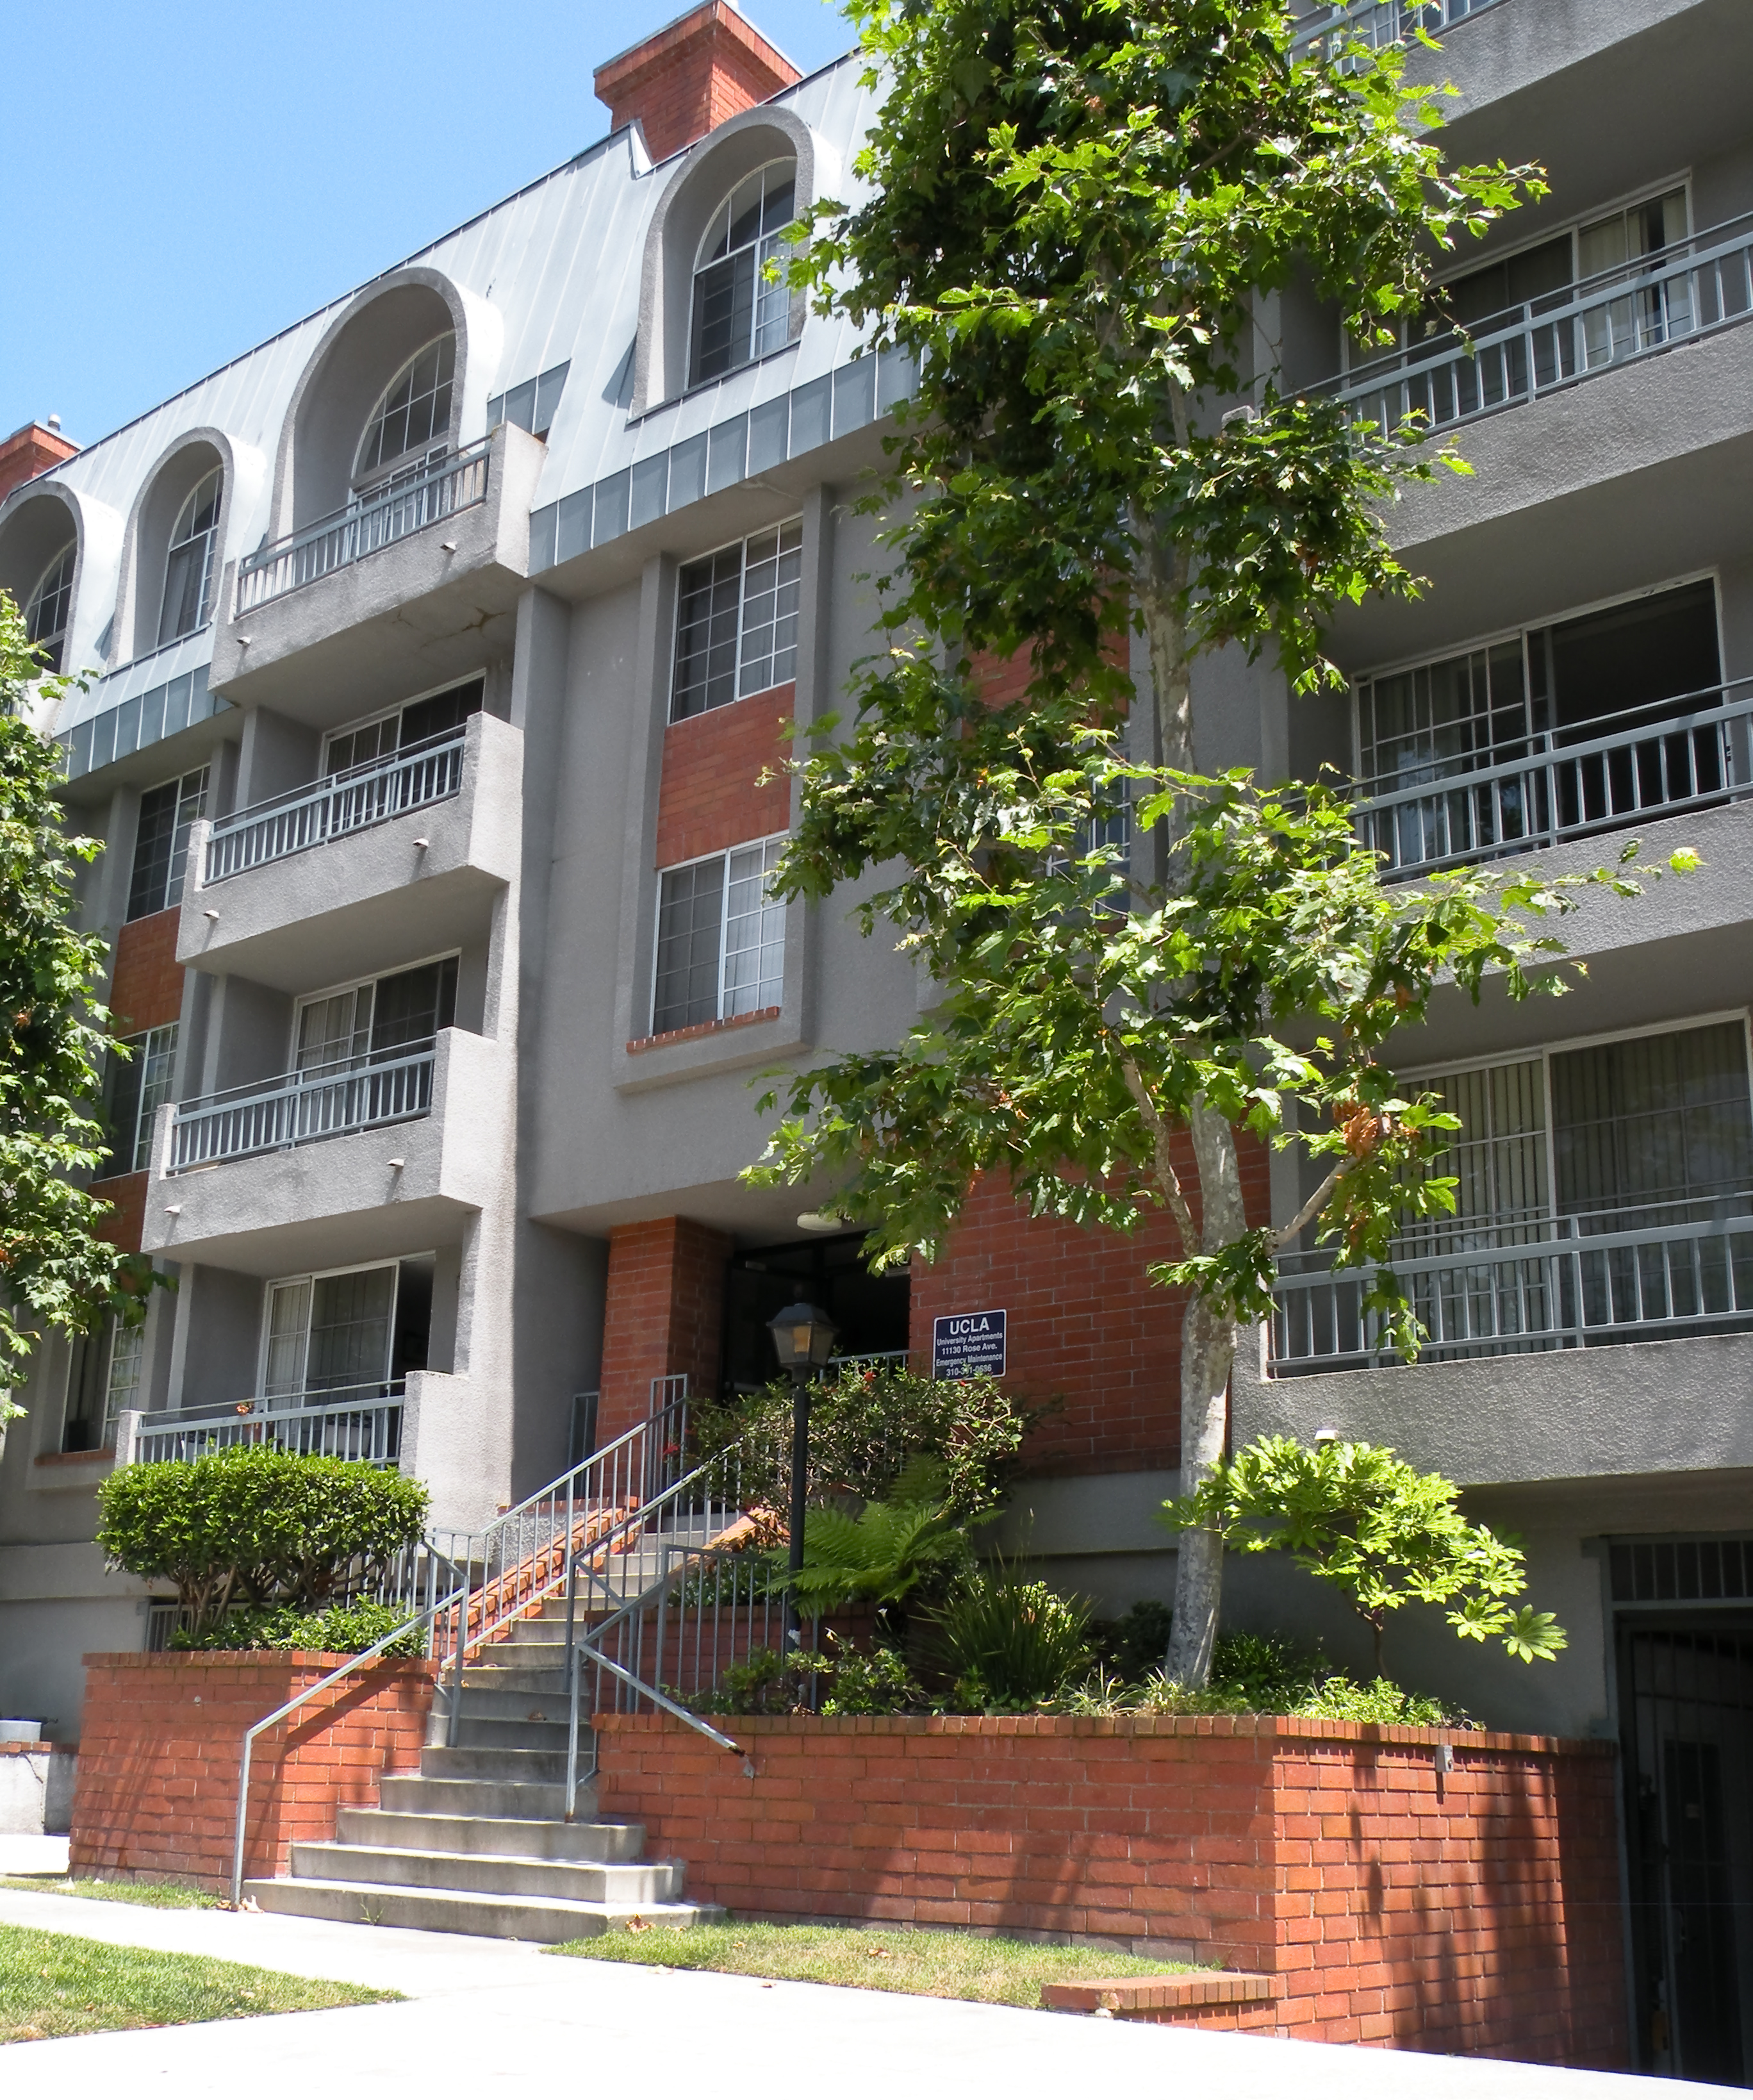 Apartment Locator Los Angeles: UCLA Campus Map: 11130 Rose Avenue Apartments; 11130 Rose